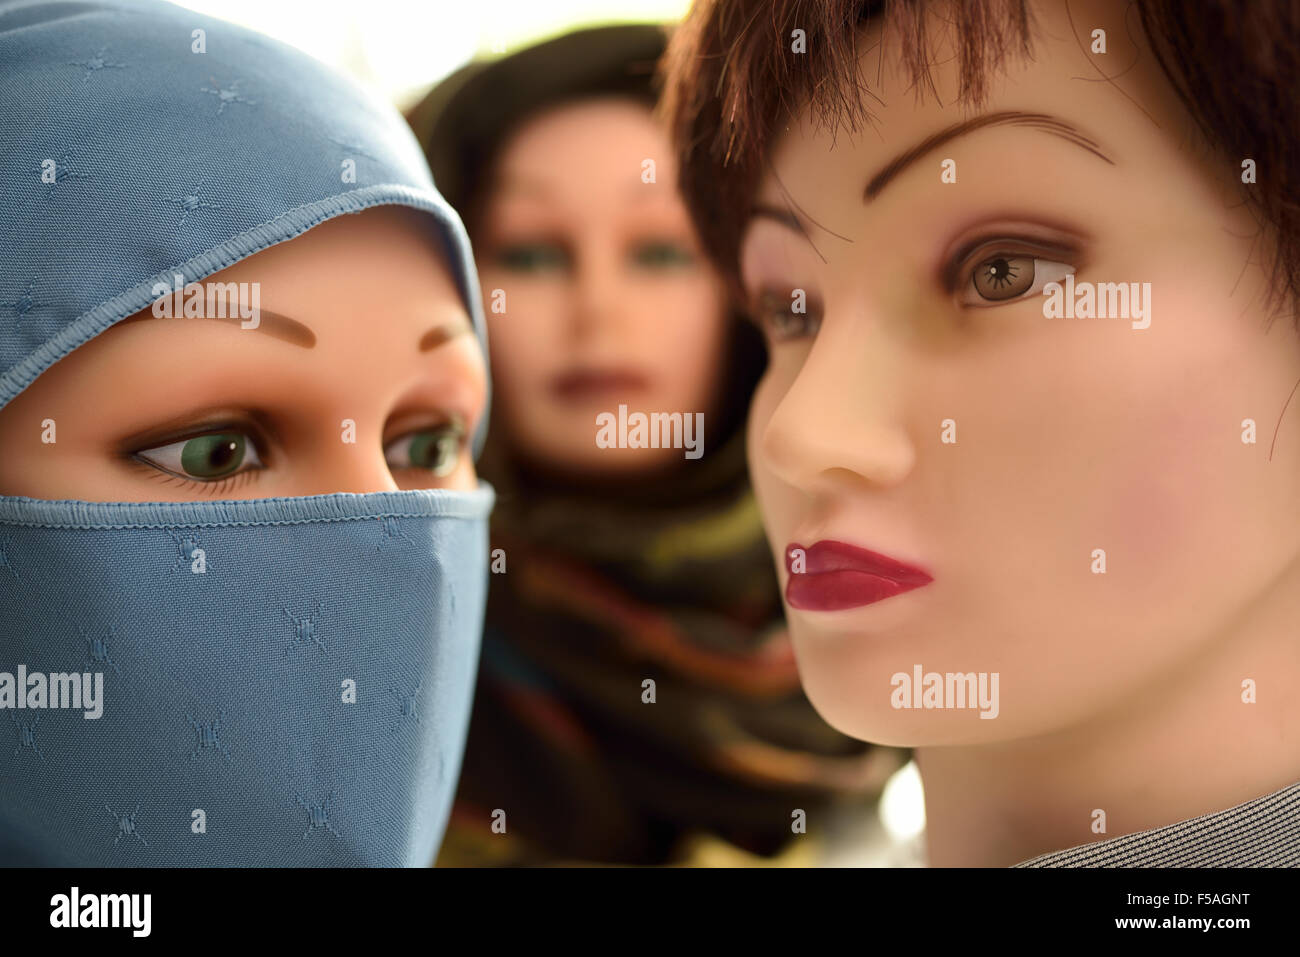 Female mannequin heads in hijab and niqab and one without - Stock Image